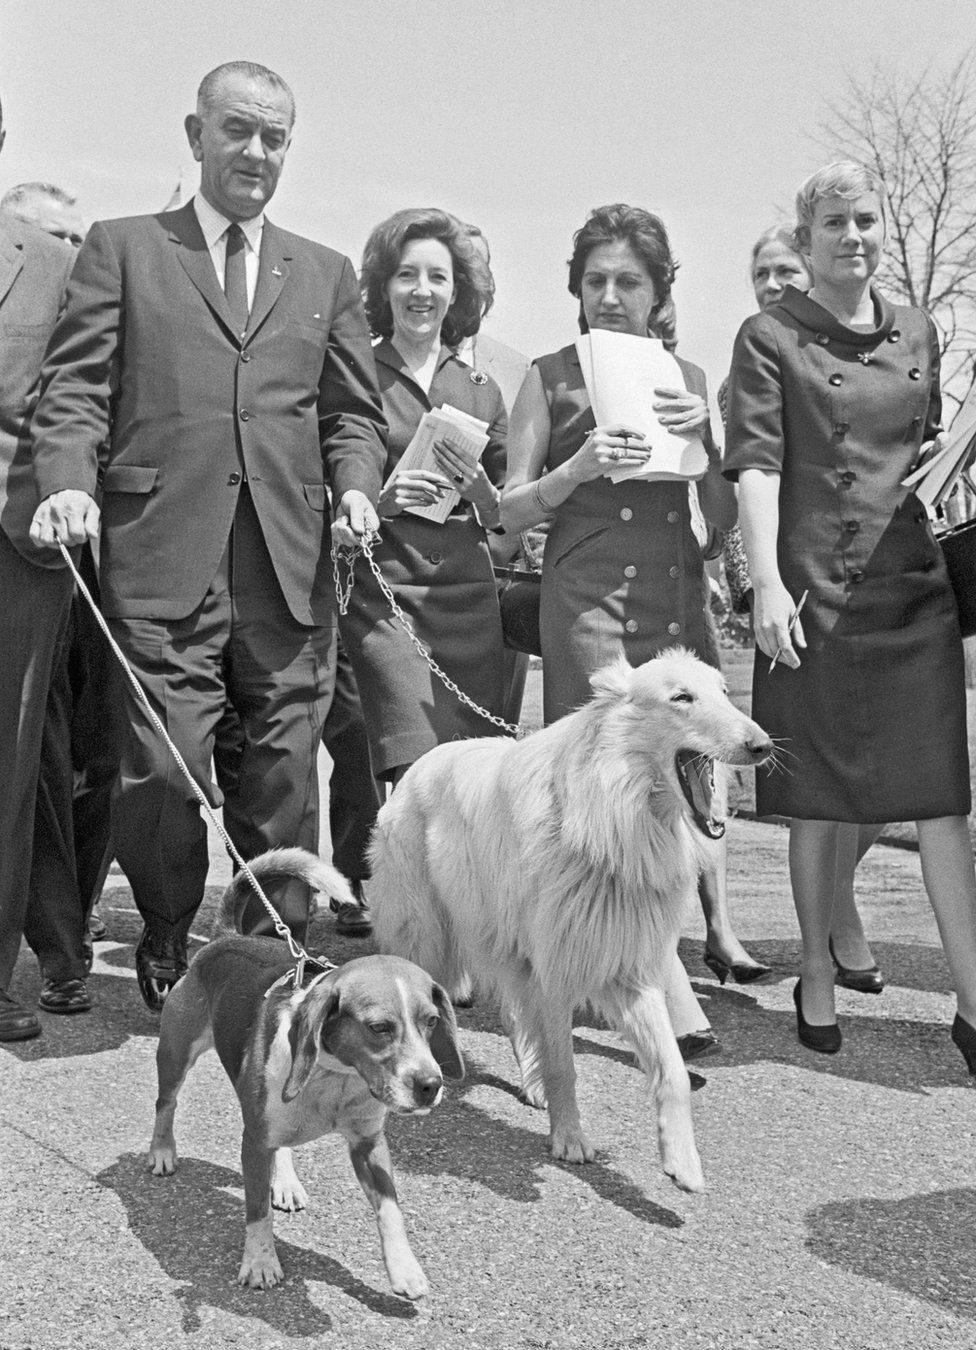 President Johnson walks his dogs whilst surrounded by journalists